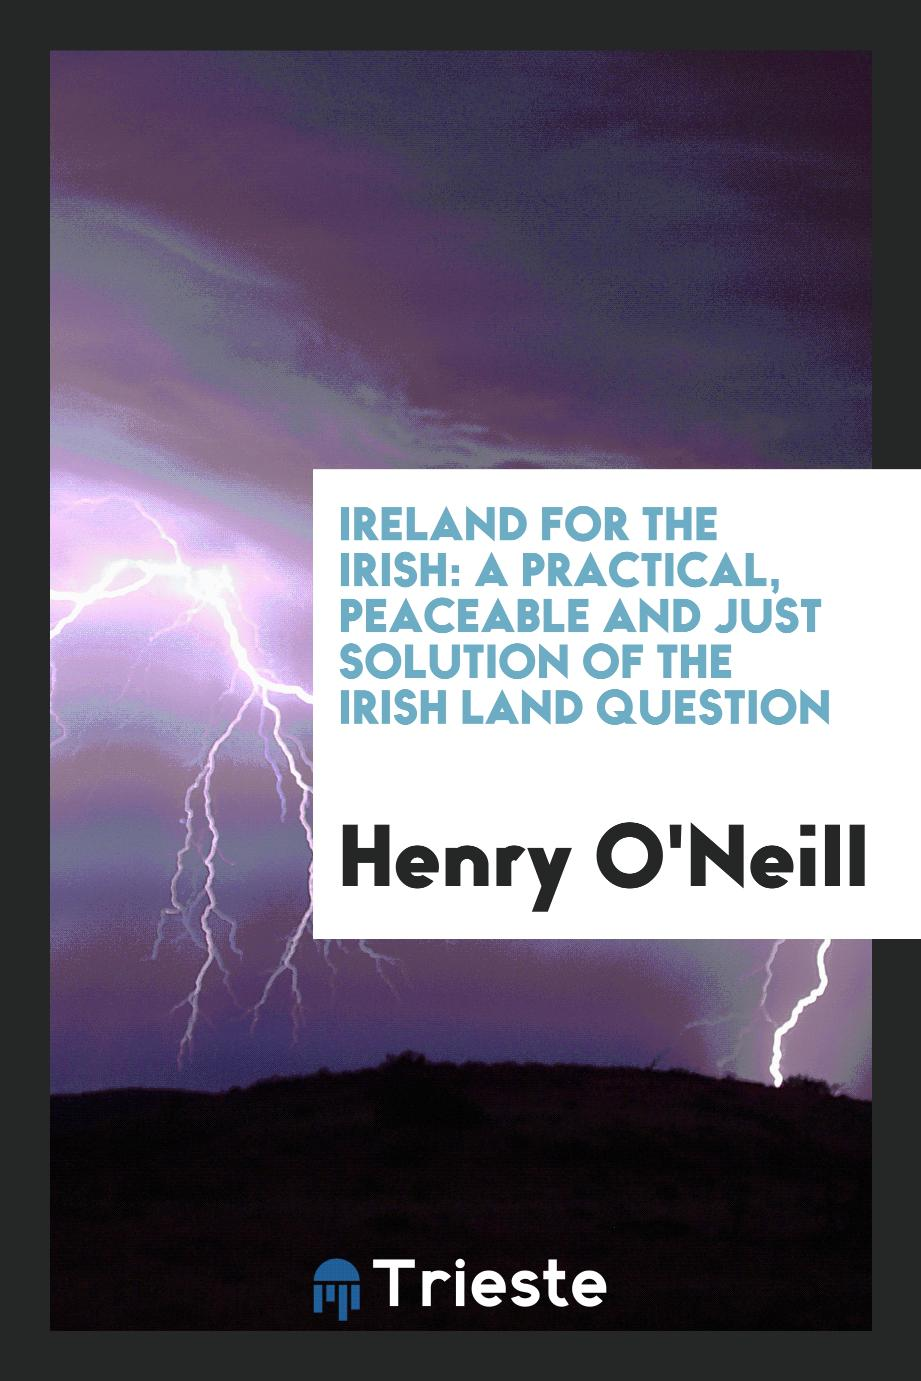 Ireland for the Irish: A Practical, Peaceable and Just Solution of the Irish Land Question